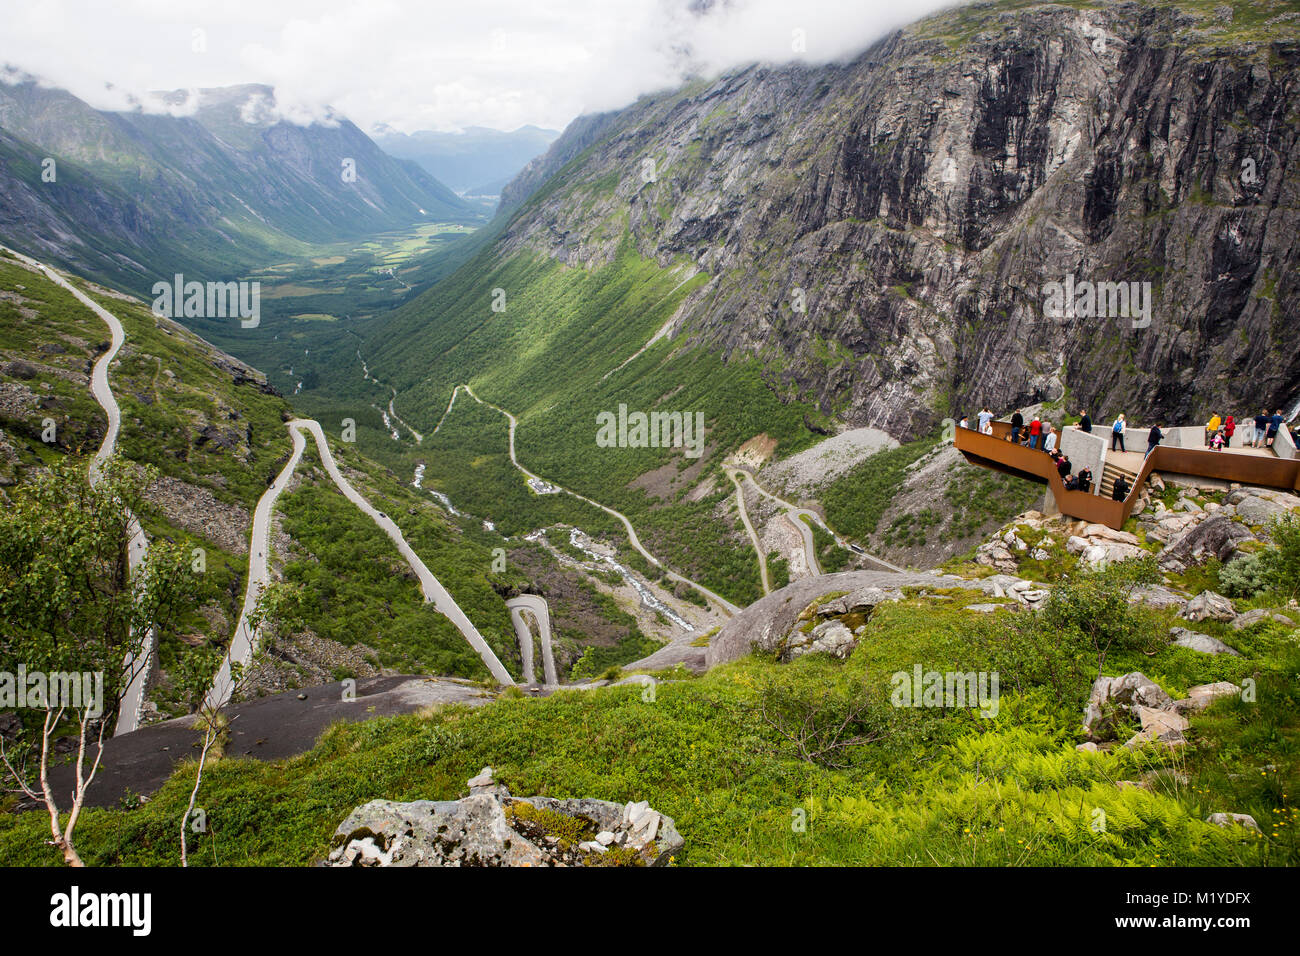 The road Trollstigen in Norway, seen from the top of the valley. - Stock Image